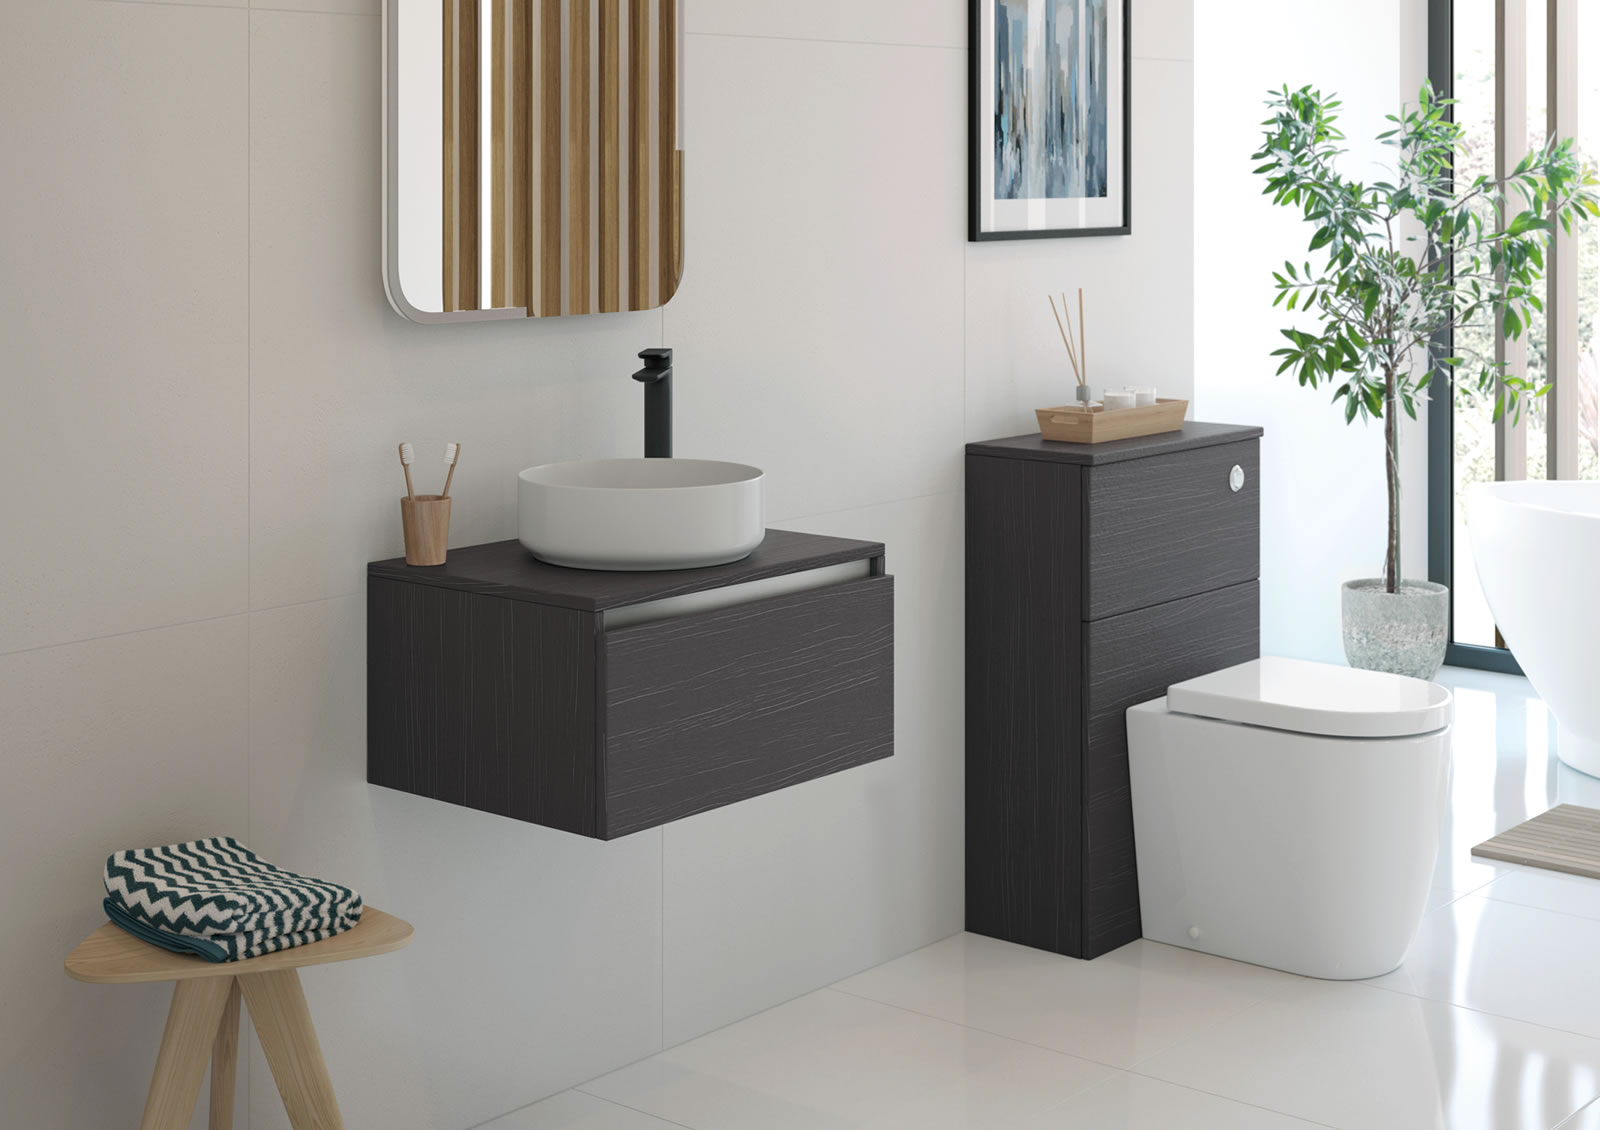 Mya Fitted Bathrooms Carino Graphitewood Main Photograph